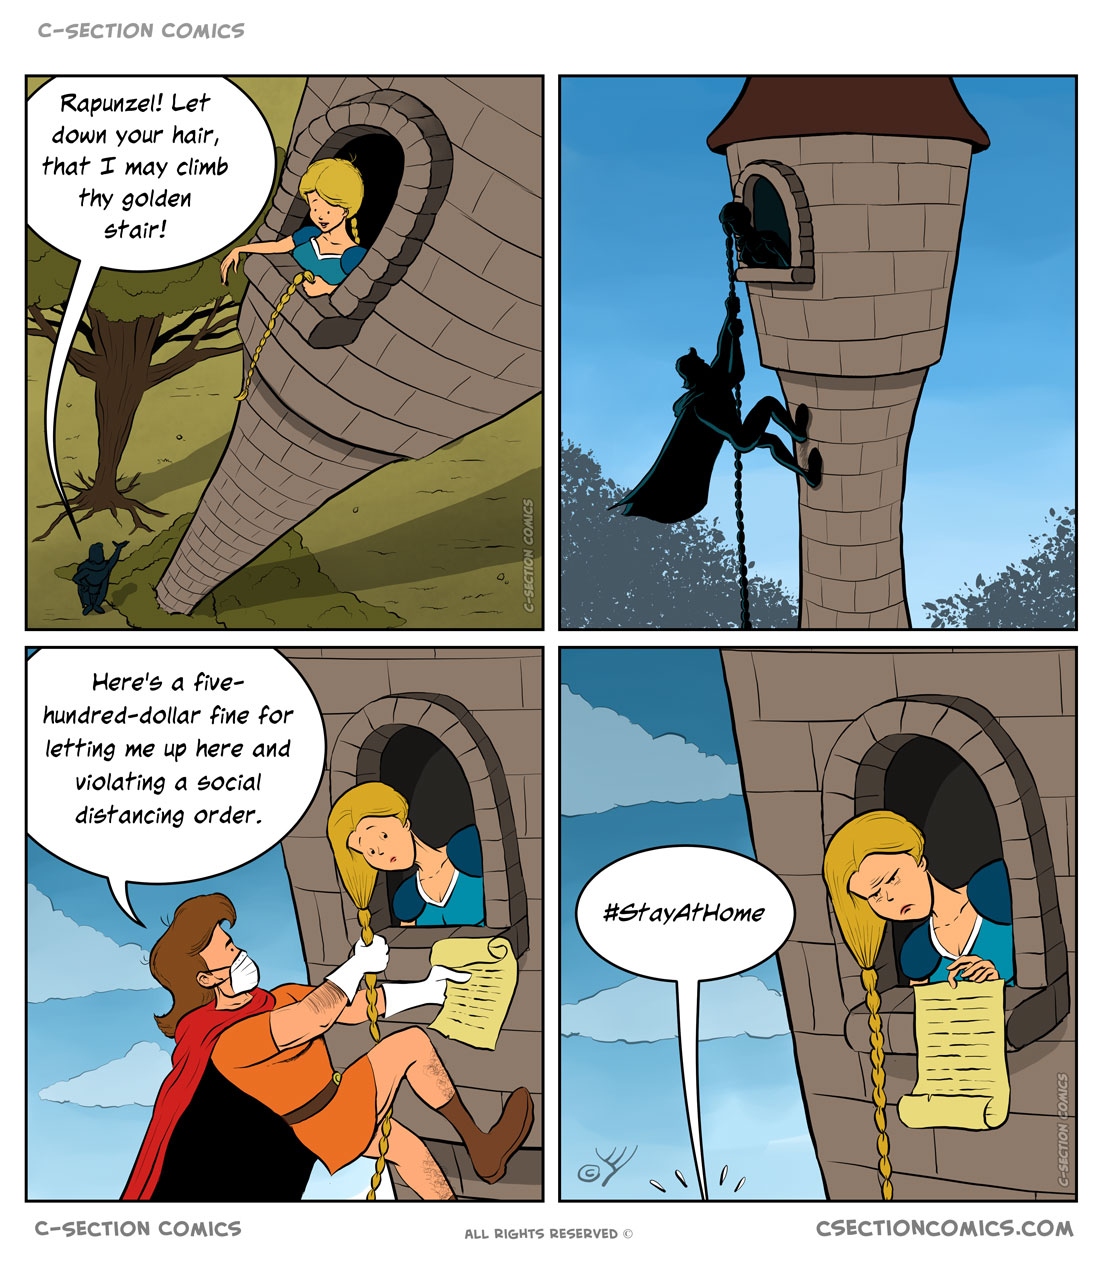 Like all of us in the quarantine, Rapunzel just wanted to go out and see a hairdresser.